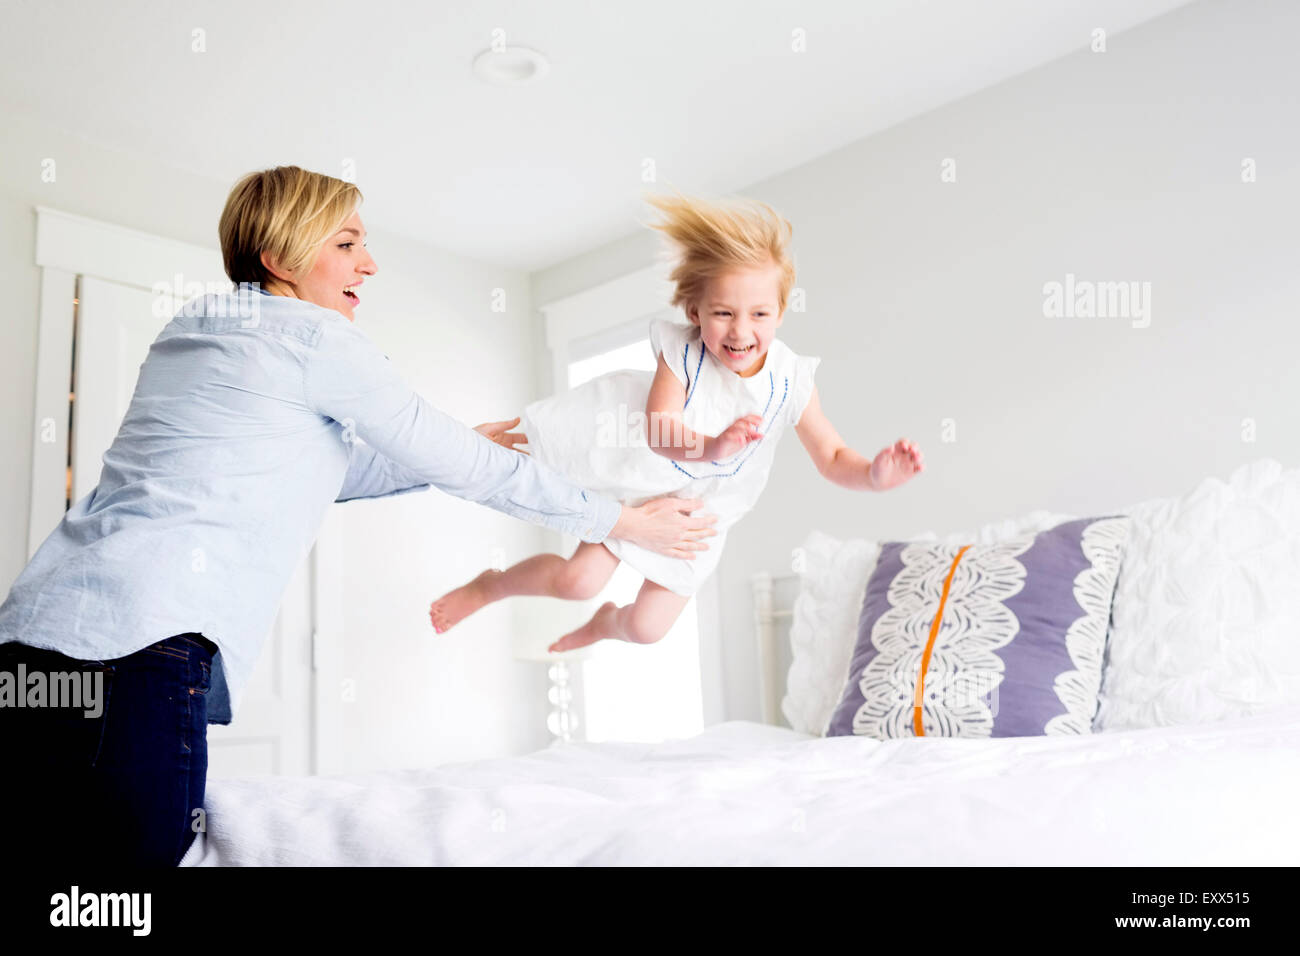 Woman playing with girl (2-3) in bedroom - Stock Image